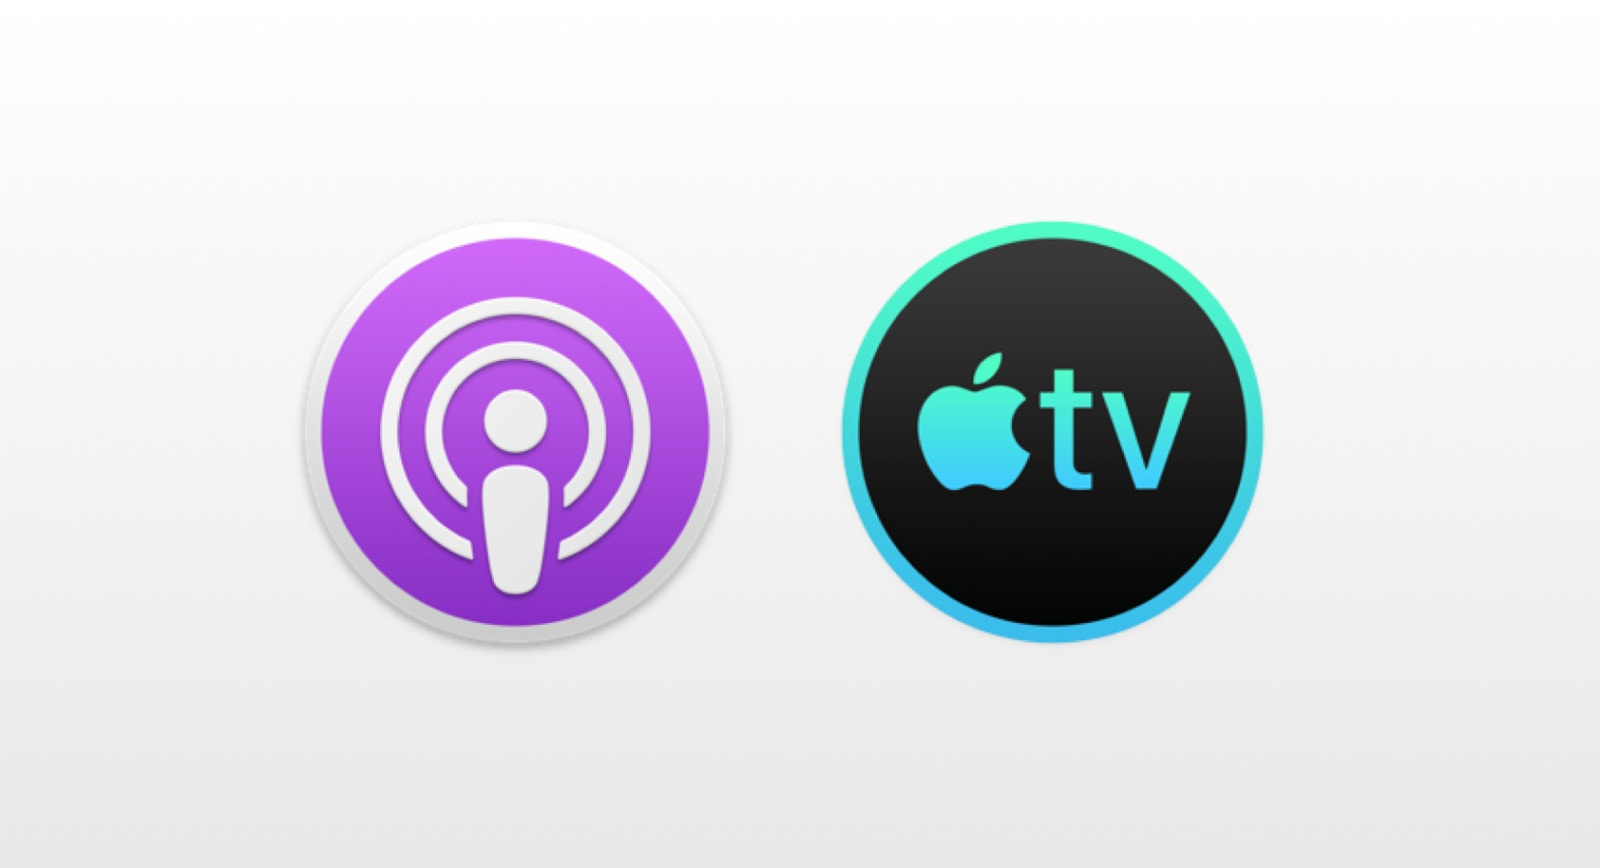 Apple is testing a new web interface for Podcasts